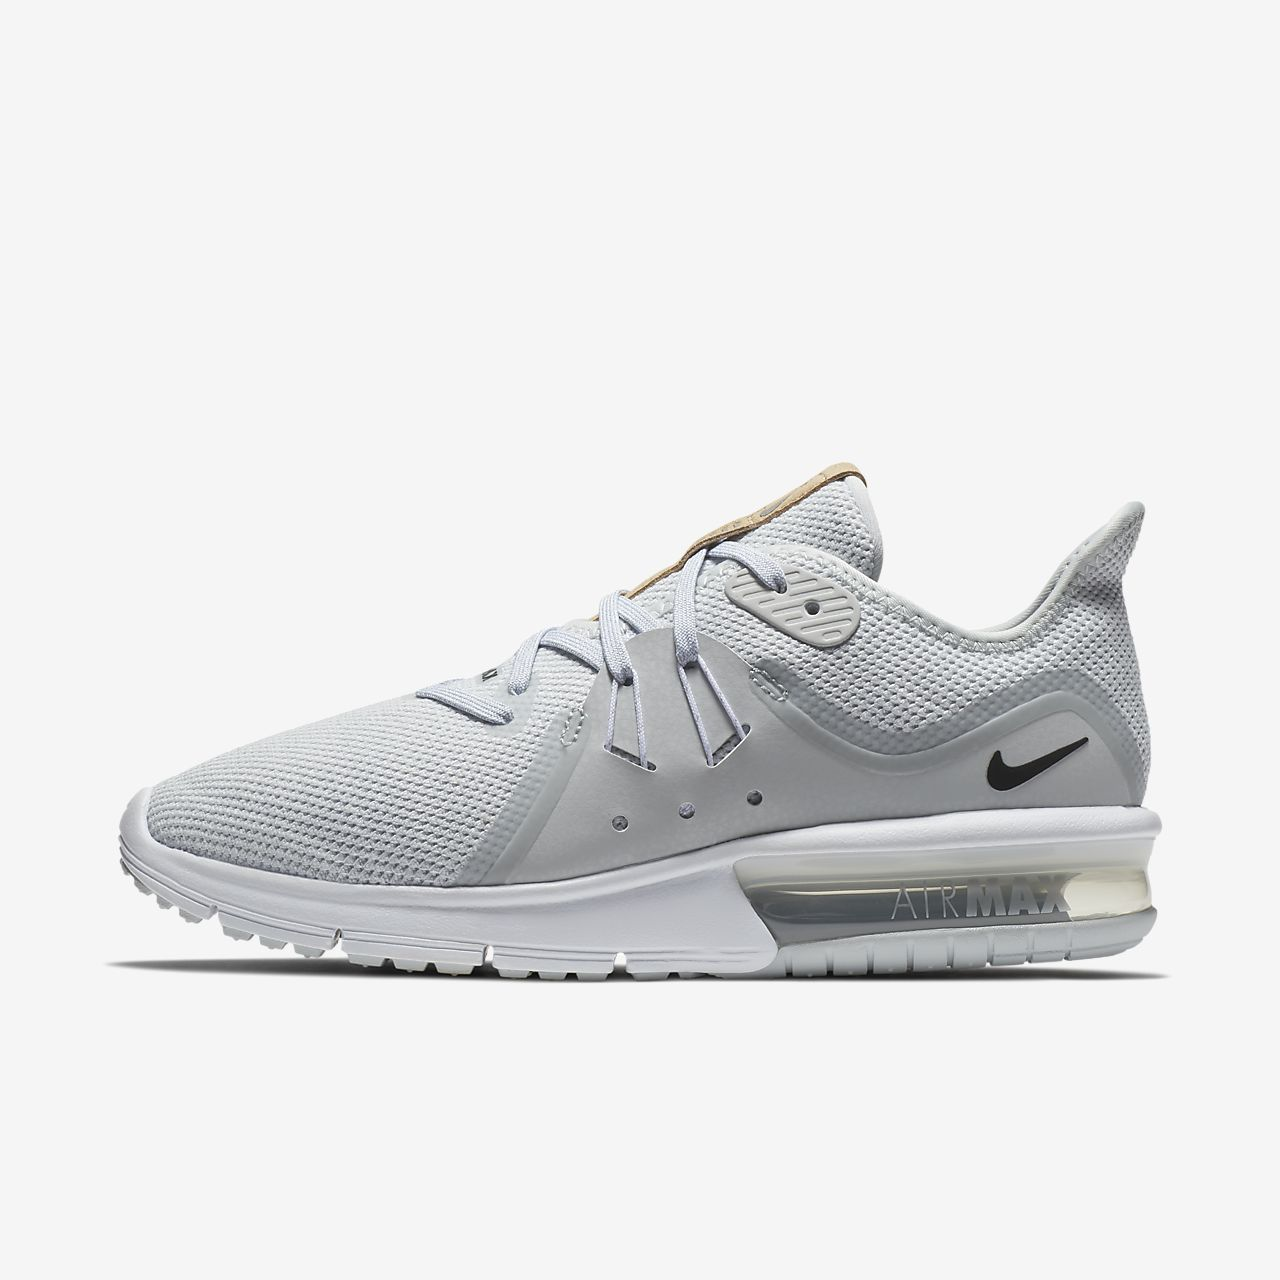 buy popular d8922 ec478 ... Nike Air Max Sequent 3 Women s Shoe